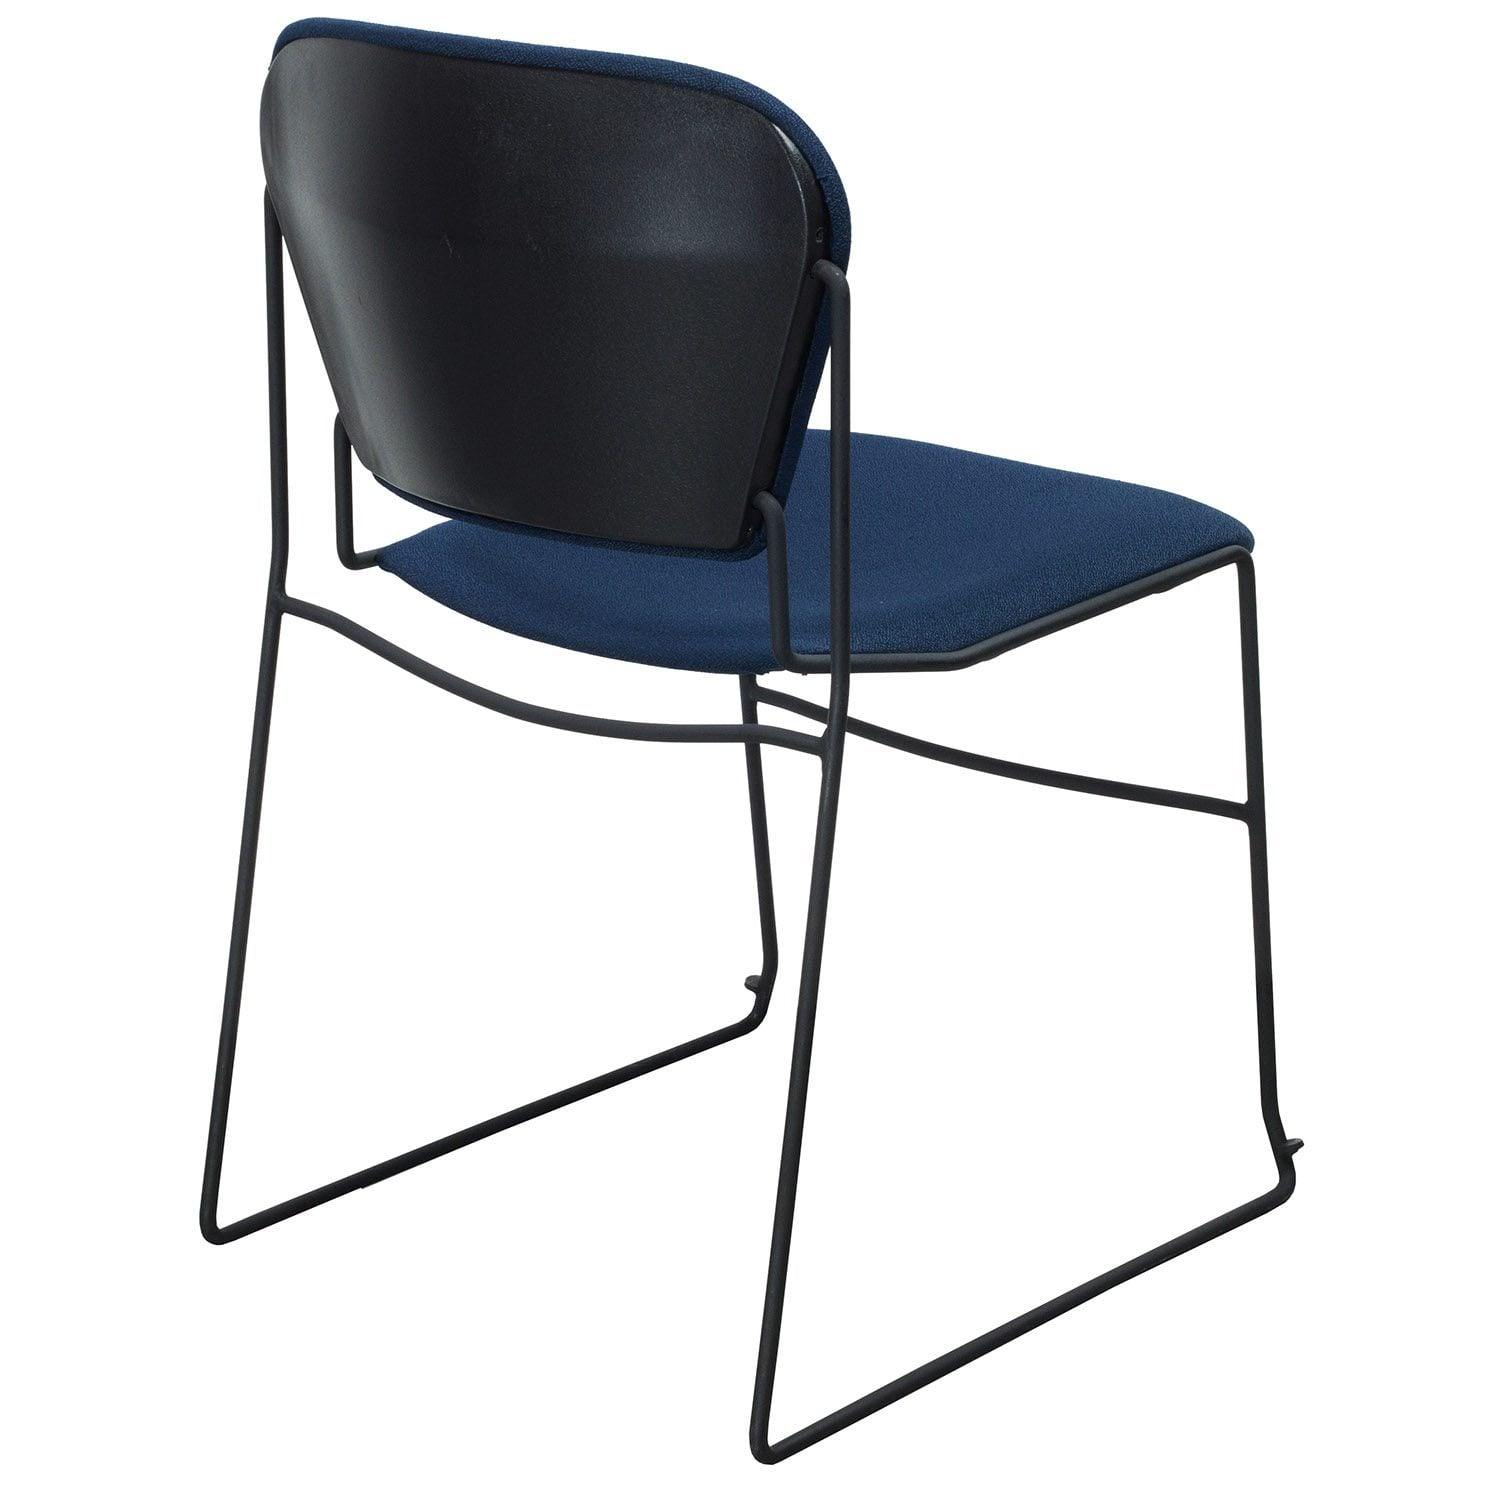 Ki Chairs Ki Perry Used Reupholstered Stack Chair Navy Blue